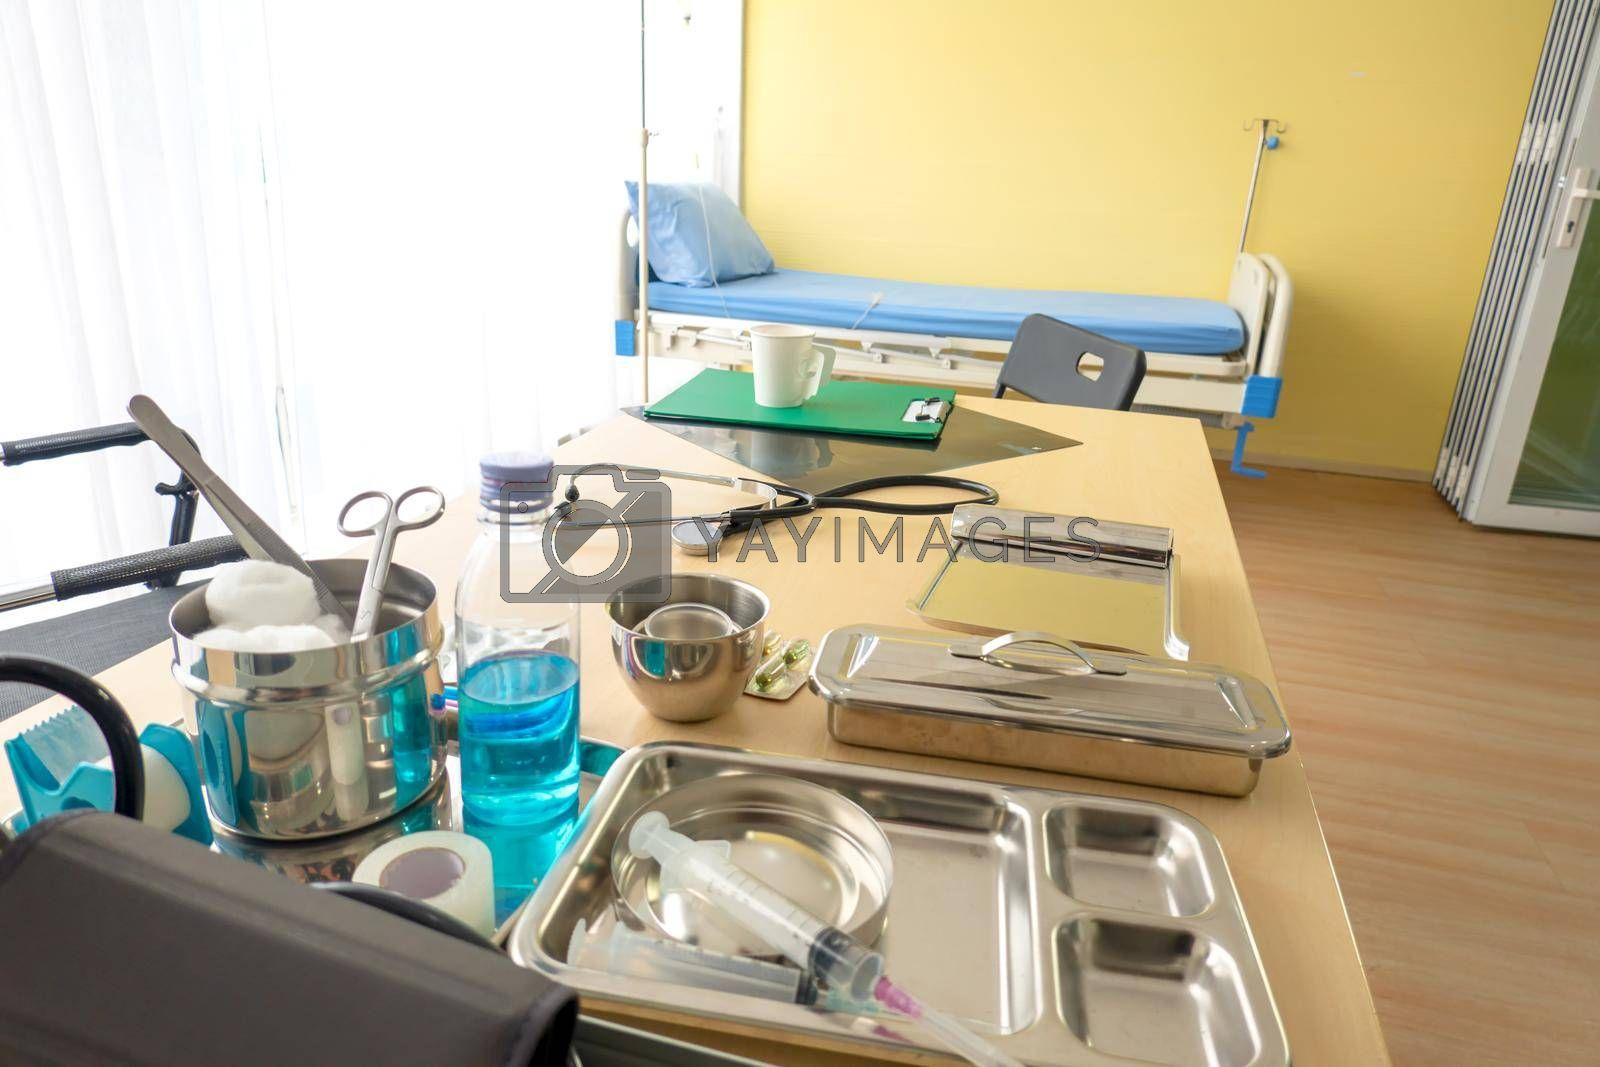 Patient bed in hospital ward with no body